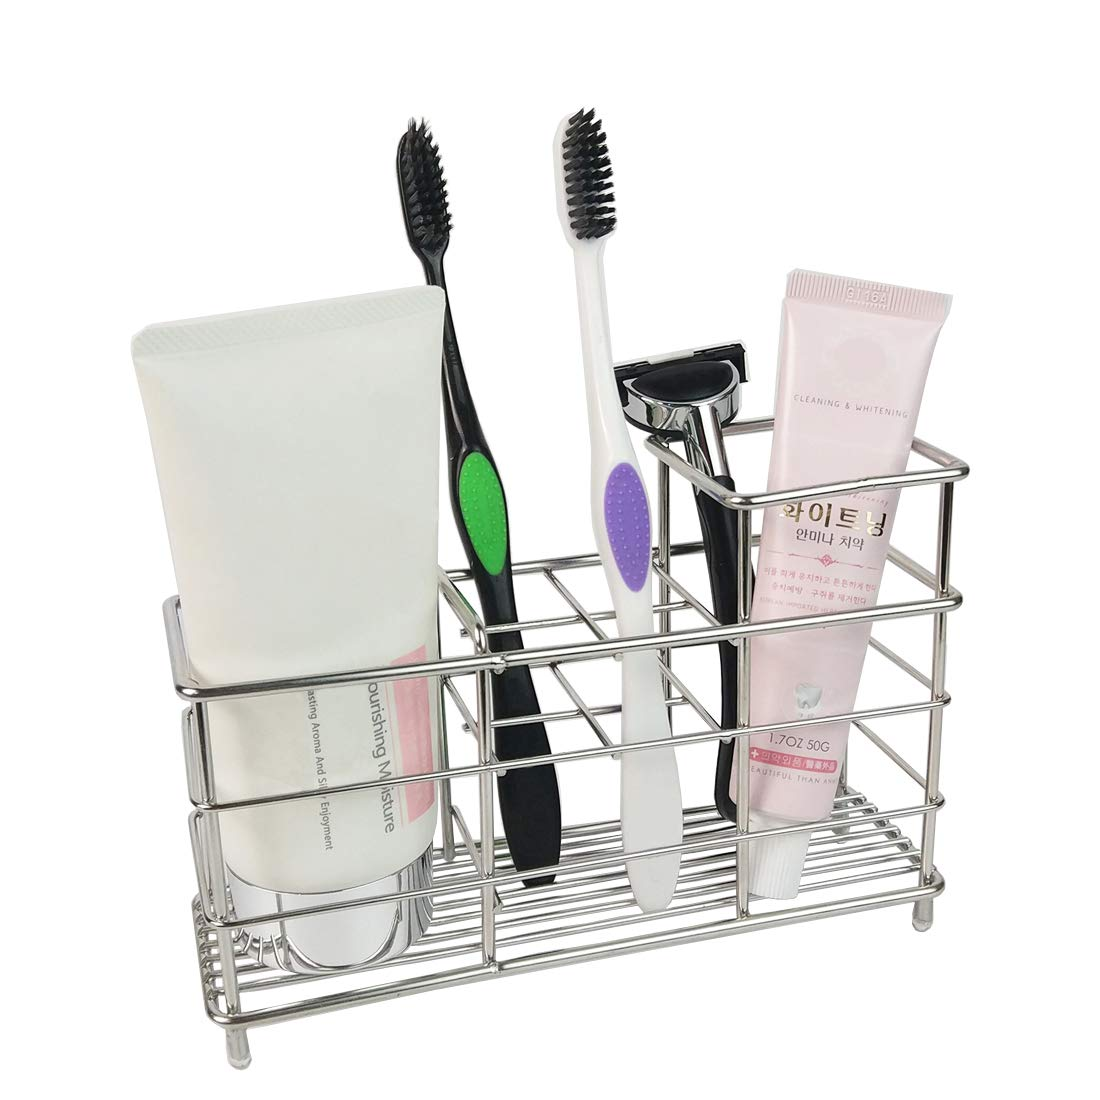 Kimiyoo Rustproof Bathroom Toothbrush Holder - Stainless Steel 6 Slots Razor Organizer Holder Stand, Multifunction Storage Rack for Electric Toothbrush, Toothpaste, Cleanser, Comb, Makeup Brush by Kimiyoo